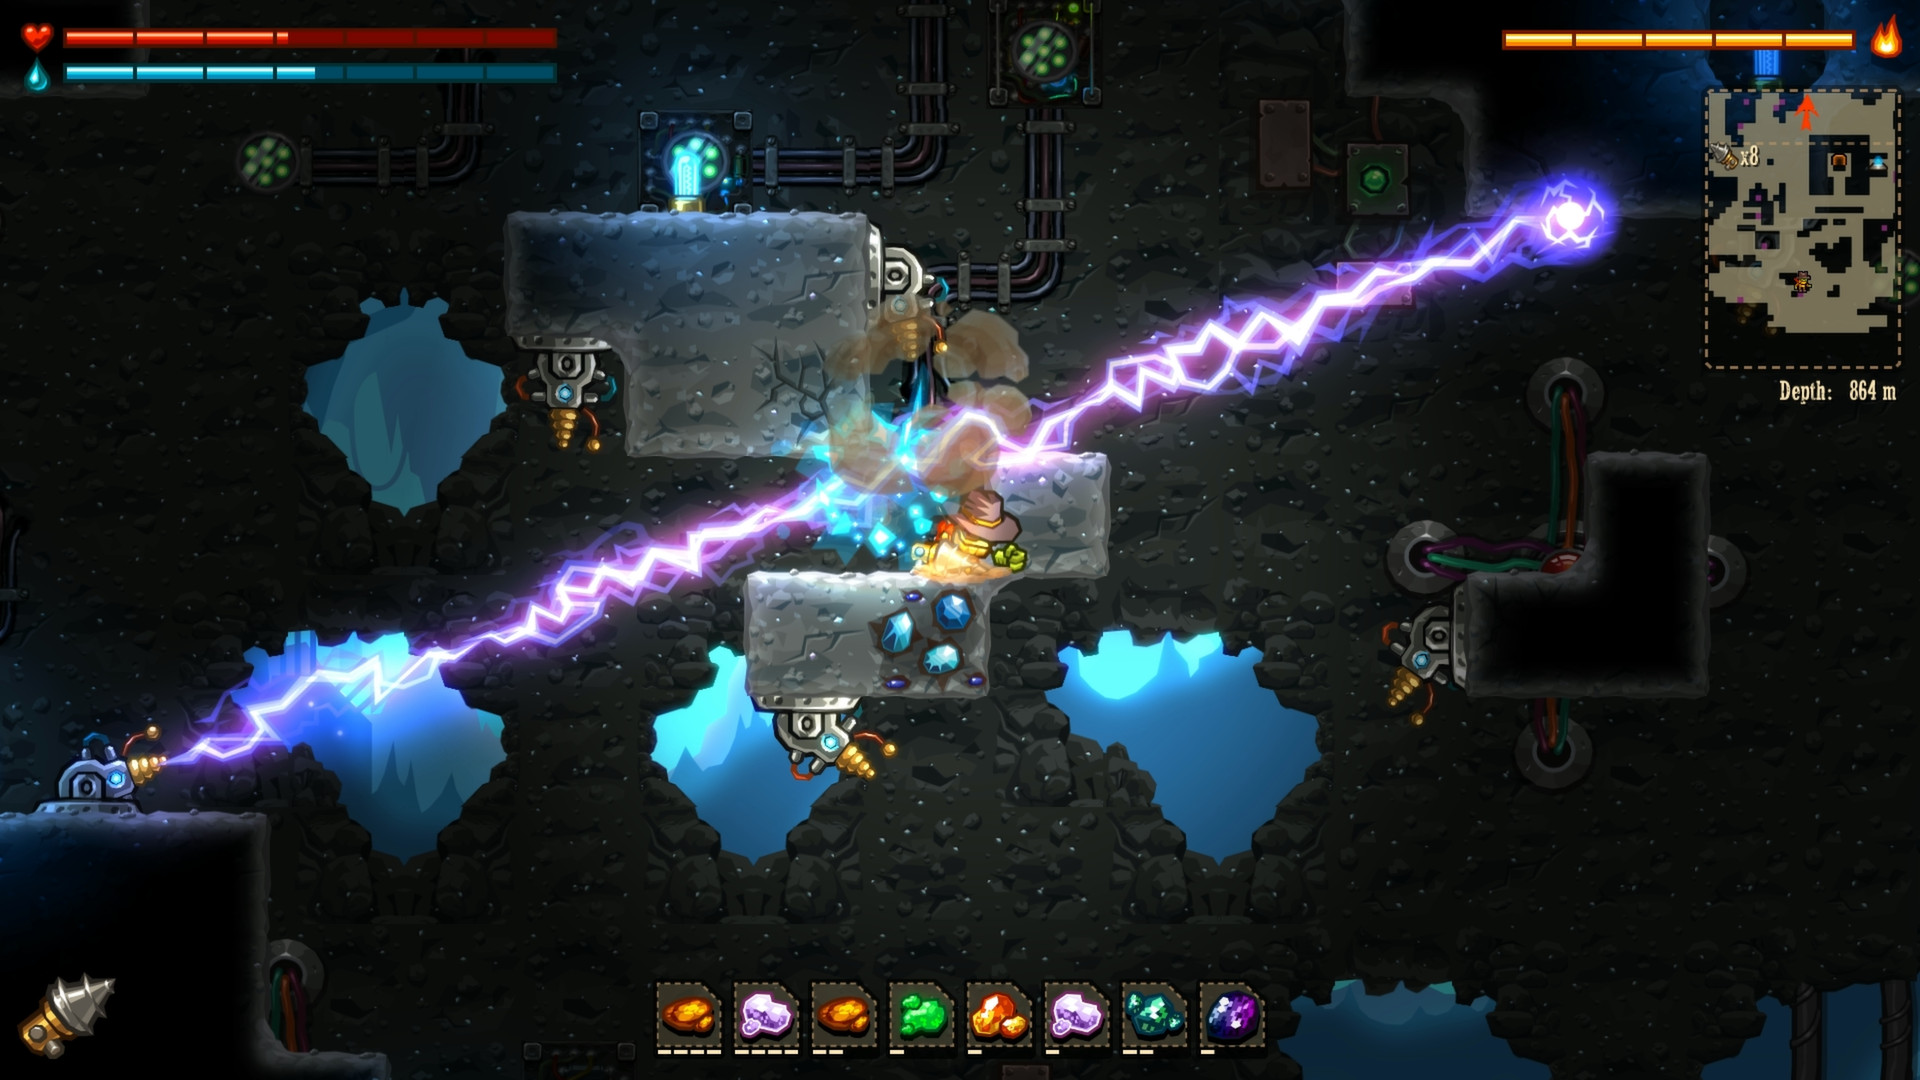 SteamWorld Dig screenshot 3